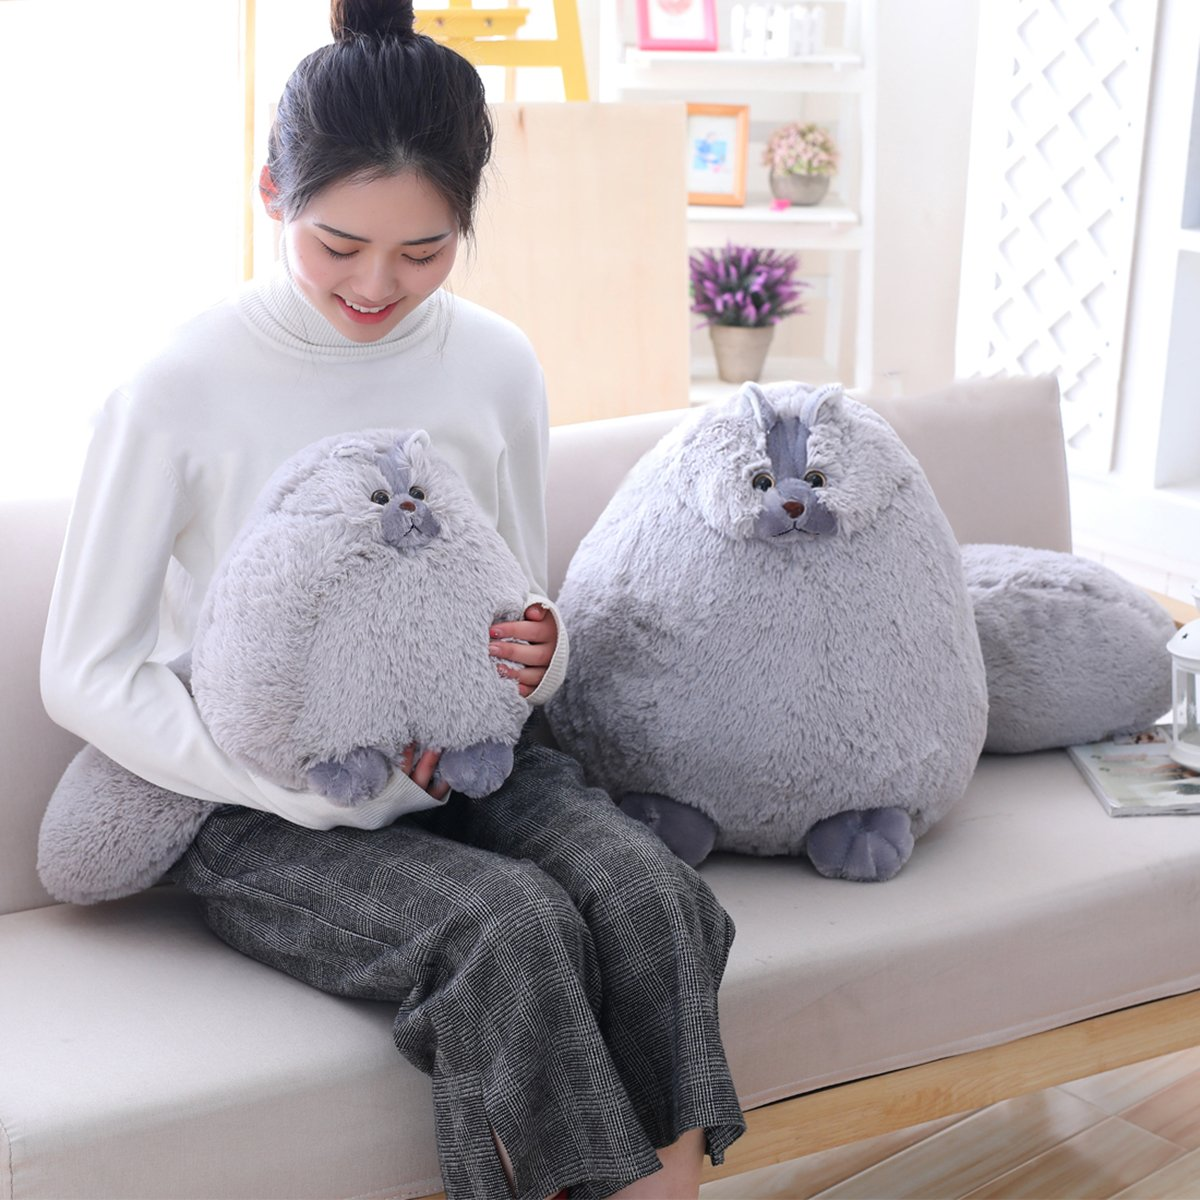 Winsterch Kids Cats Stuffed Animal Toys Birthday Gift,Plush Pillow,Gray,11.8 Inches by Winsterch (Image #5)